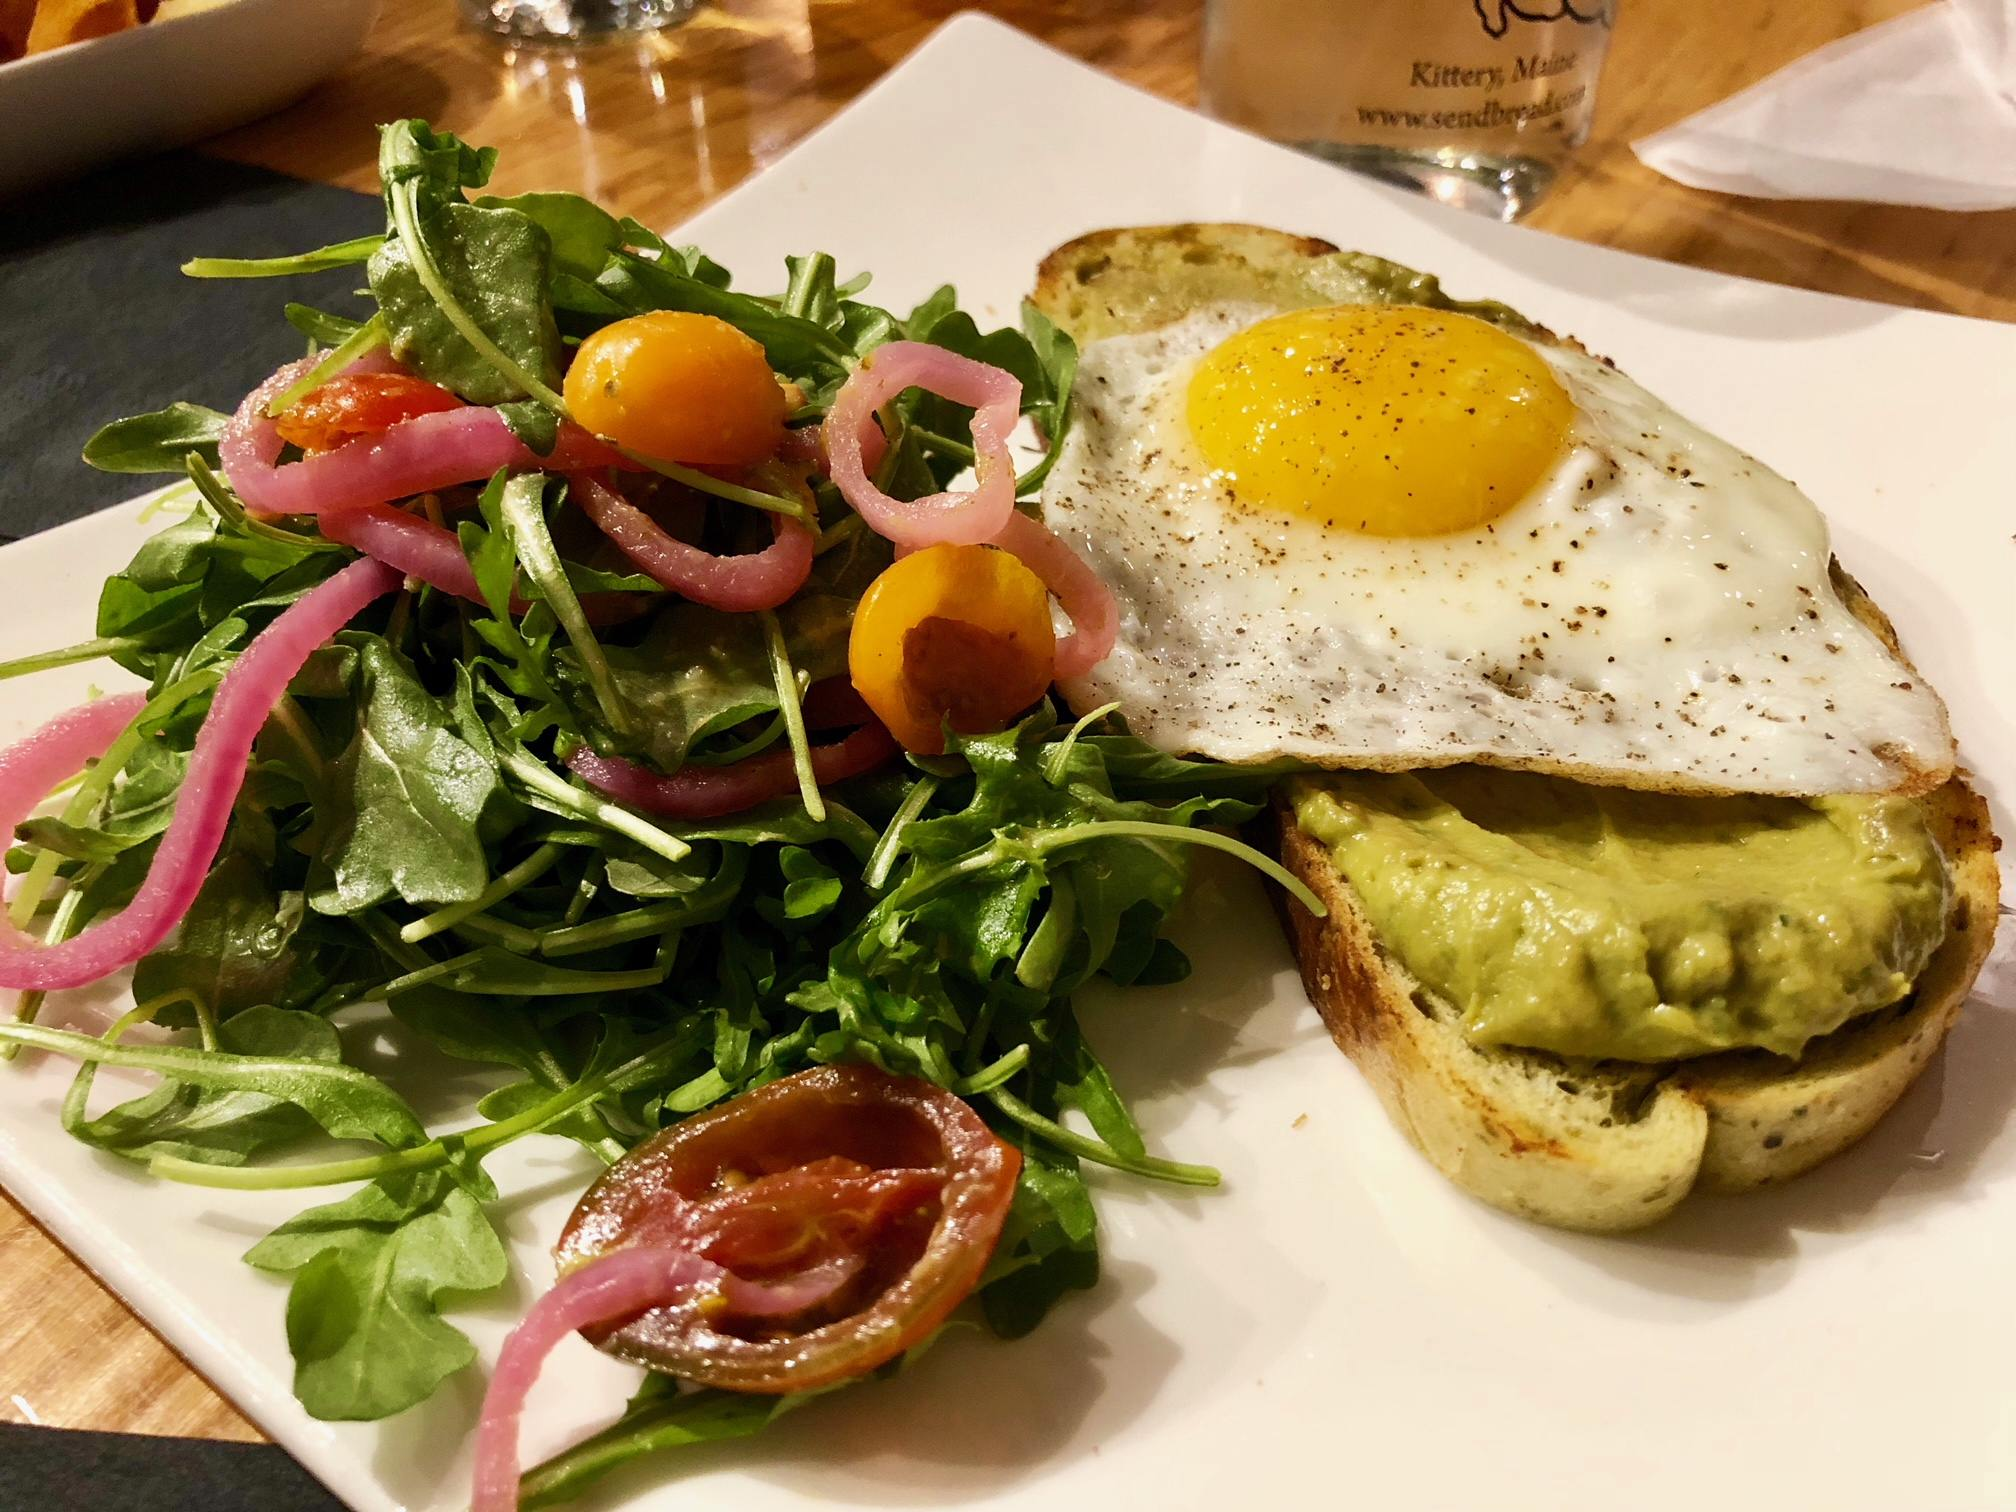 Avocado toast dish from When Pigs Fly in Kittery, Maine